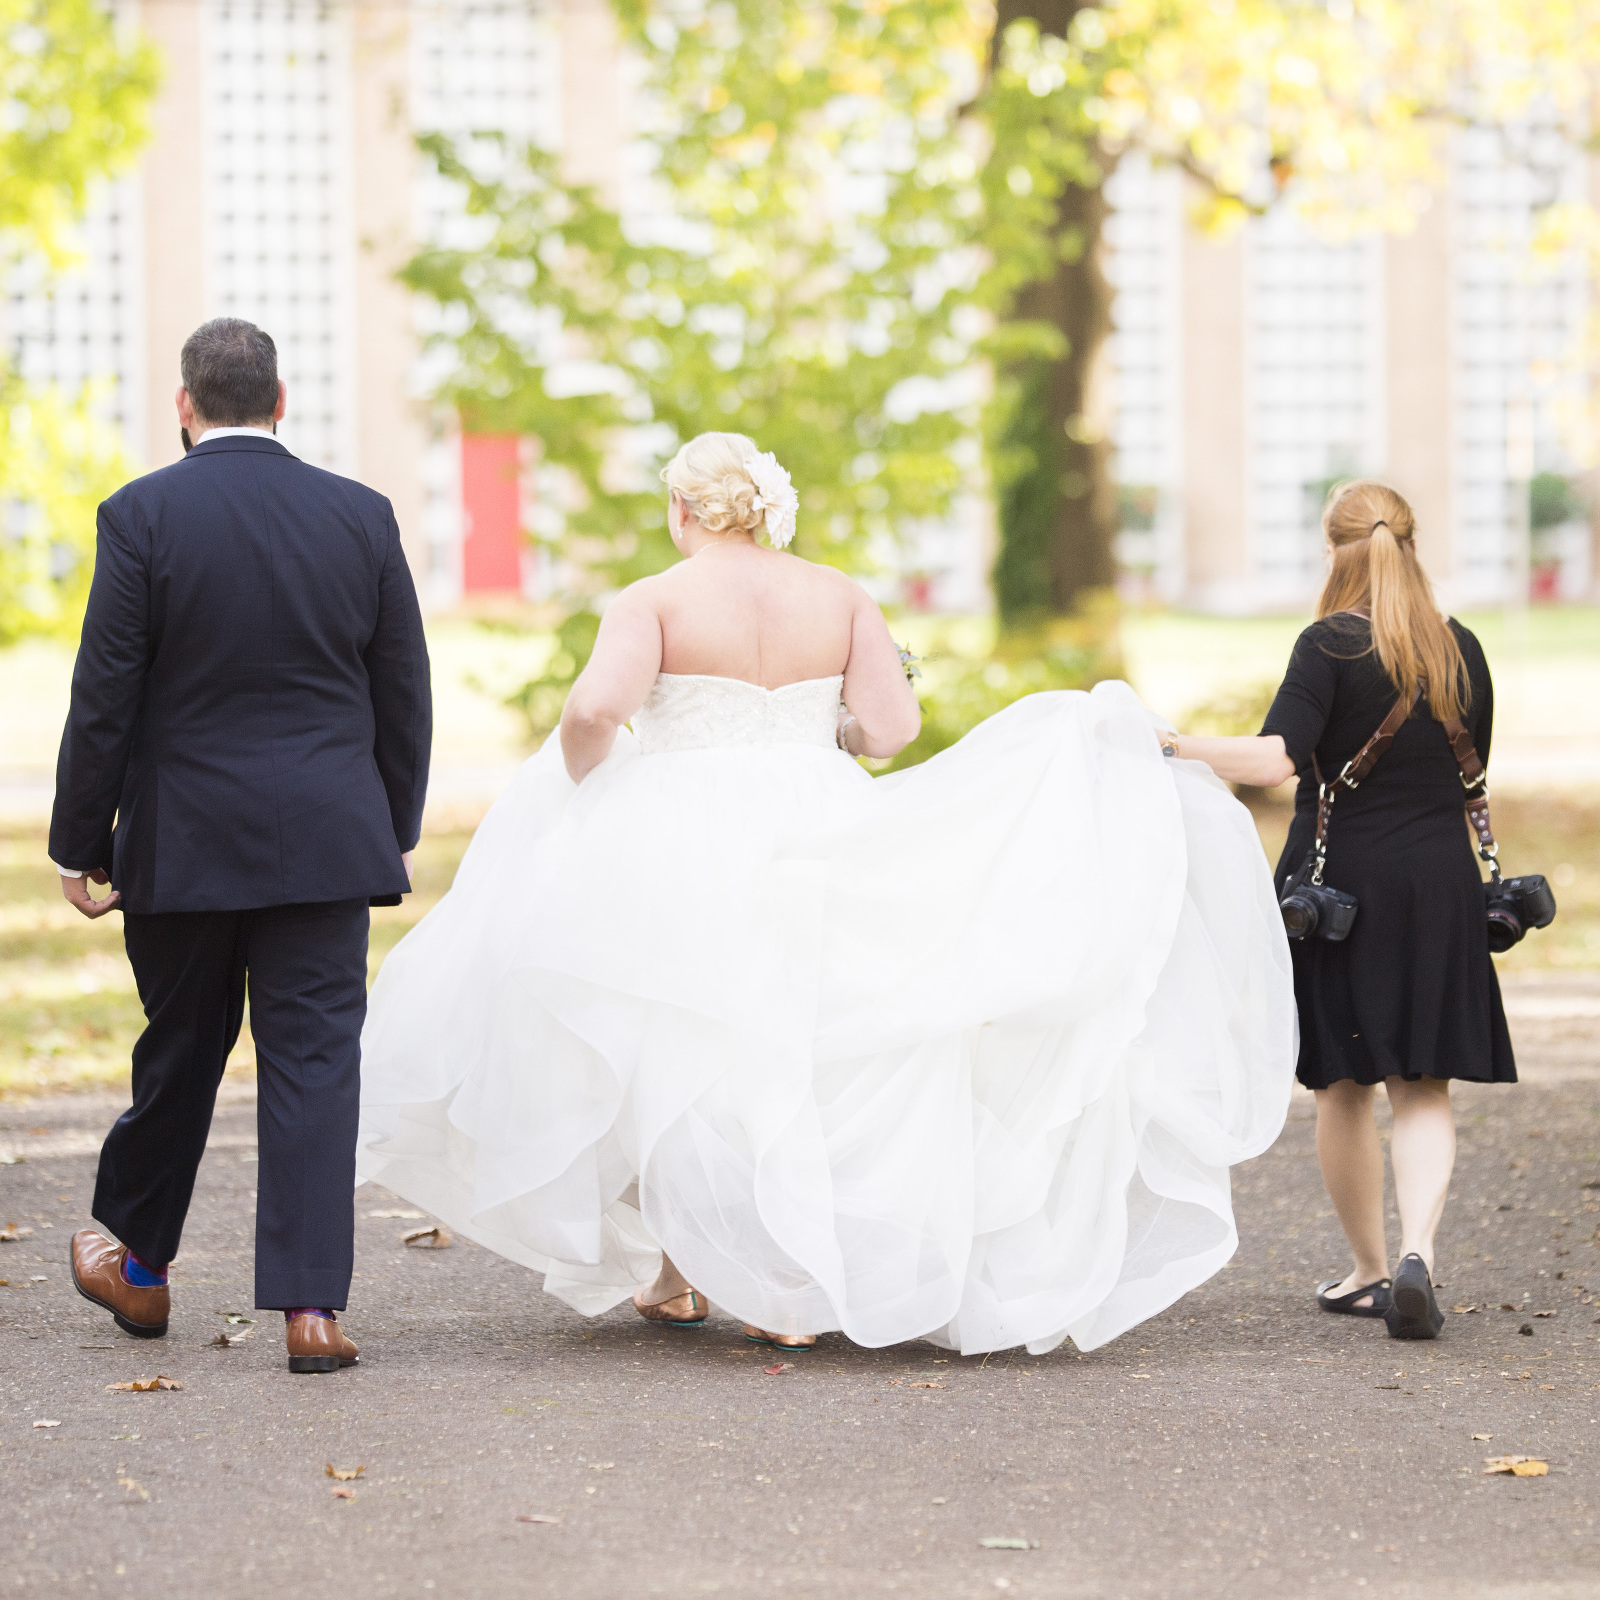 South Jersey Wedding Photographer - helping bride with her dress